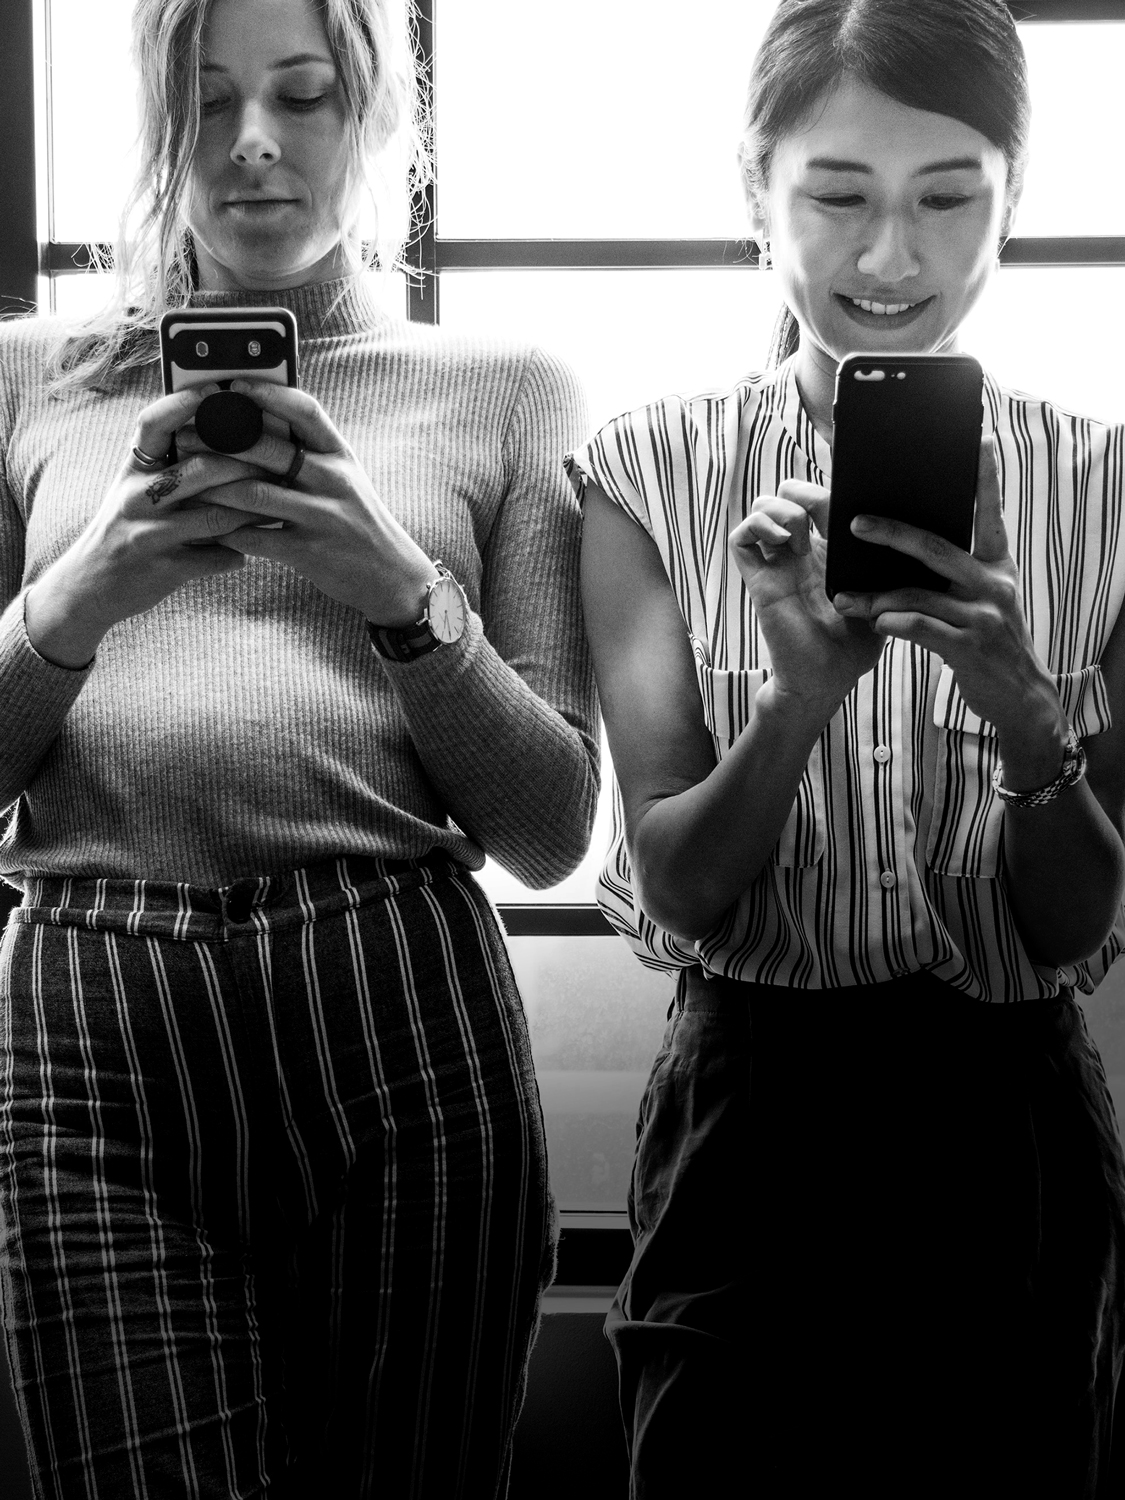 Two females on their phones